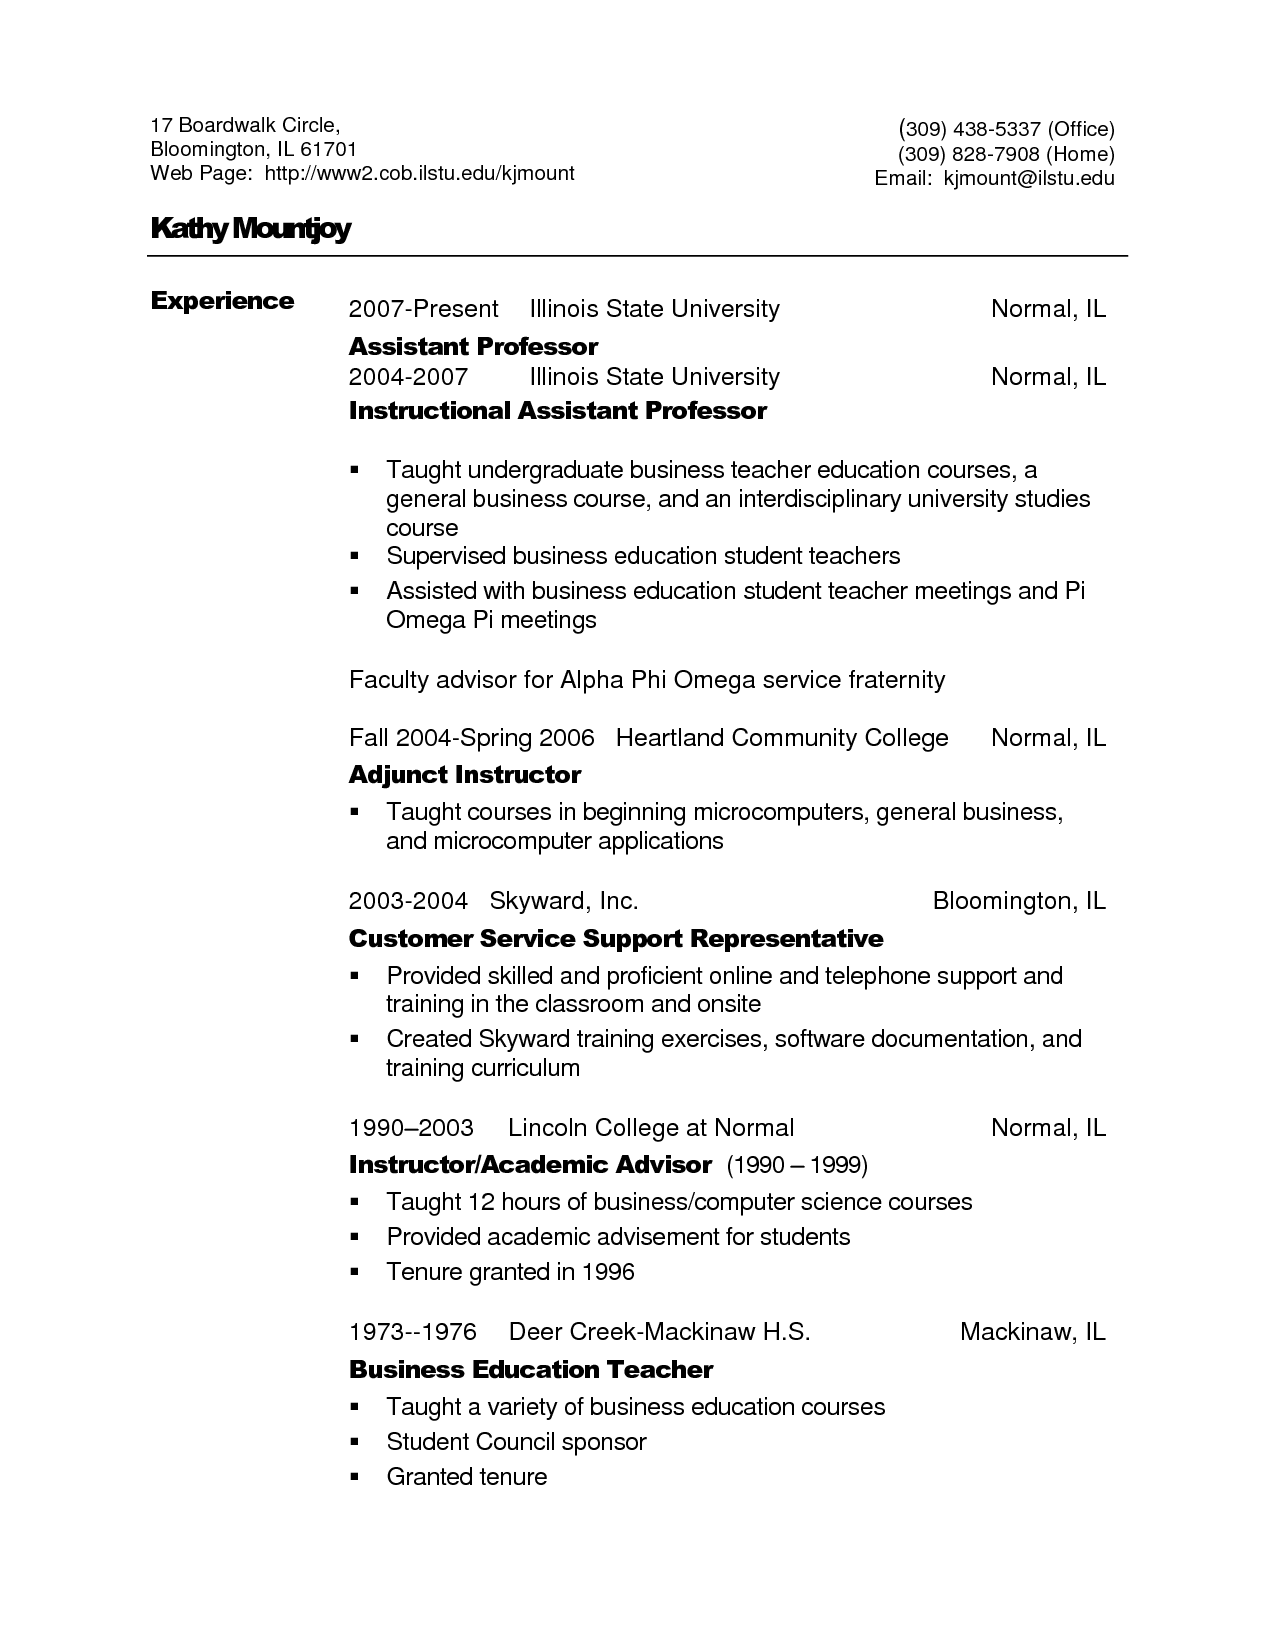 English resume template seeabruzzoresume templates cover letter english resume template seeabruzzoresume templates cover letter examples yelopaper Gallery